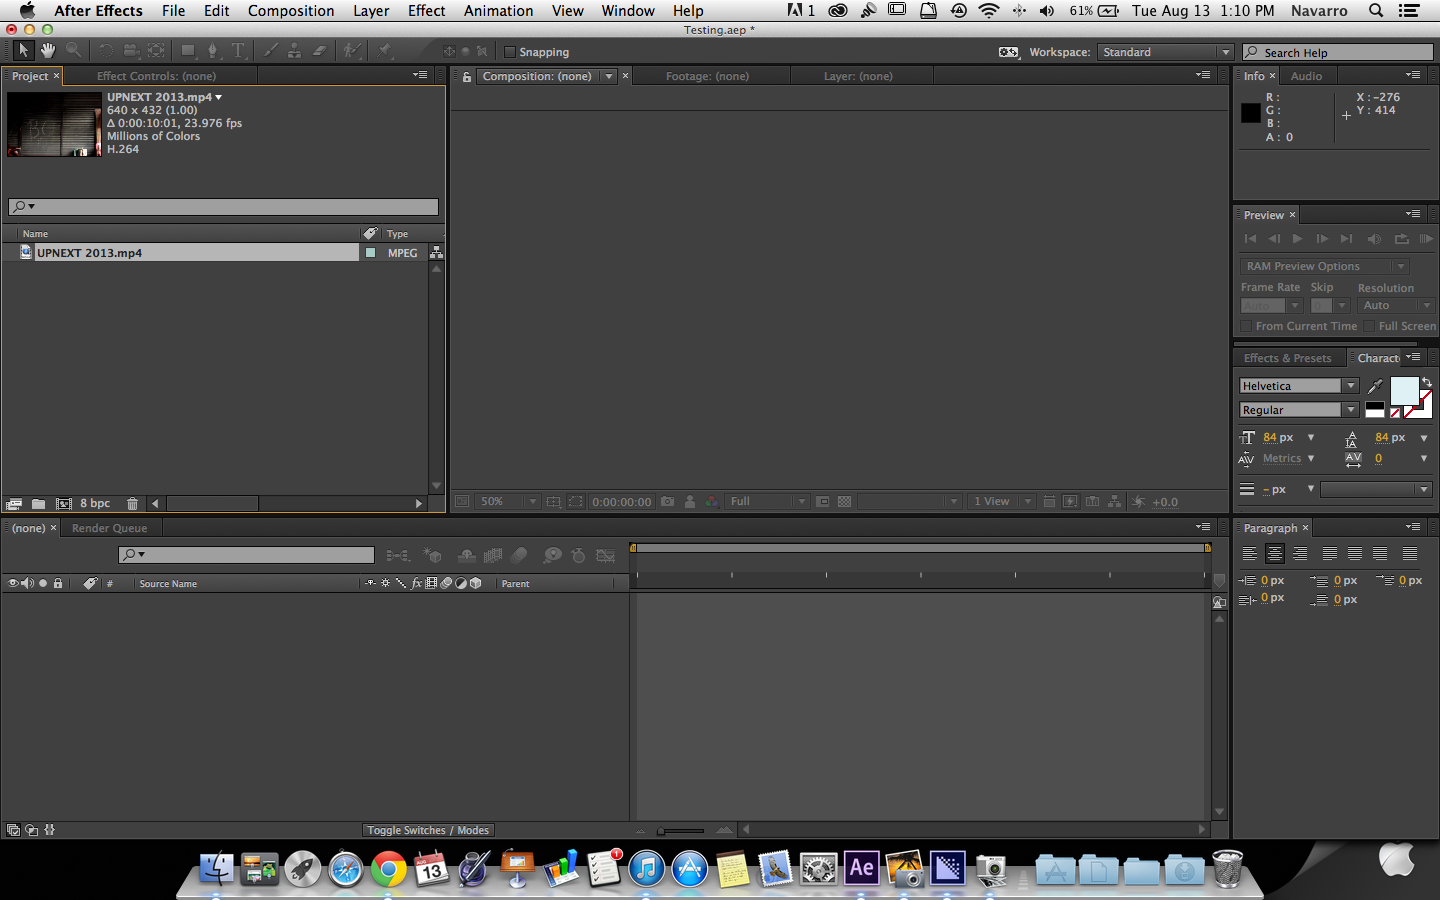 Adobe after effects cs3 - 32d44